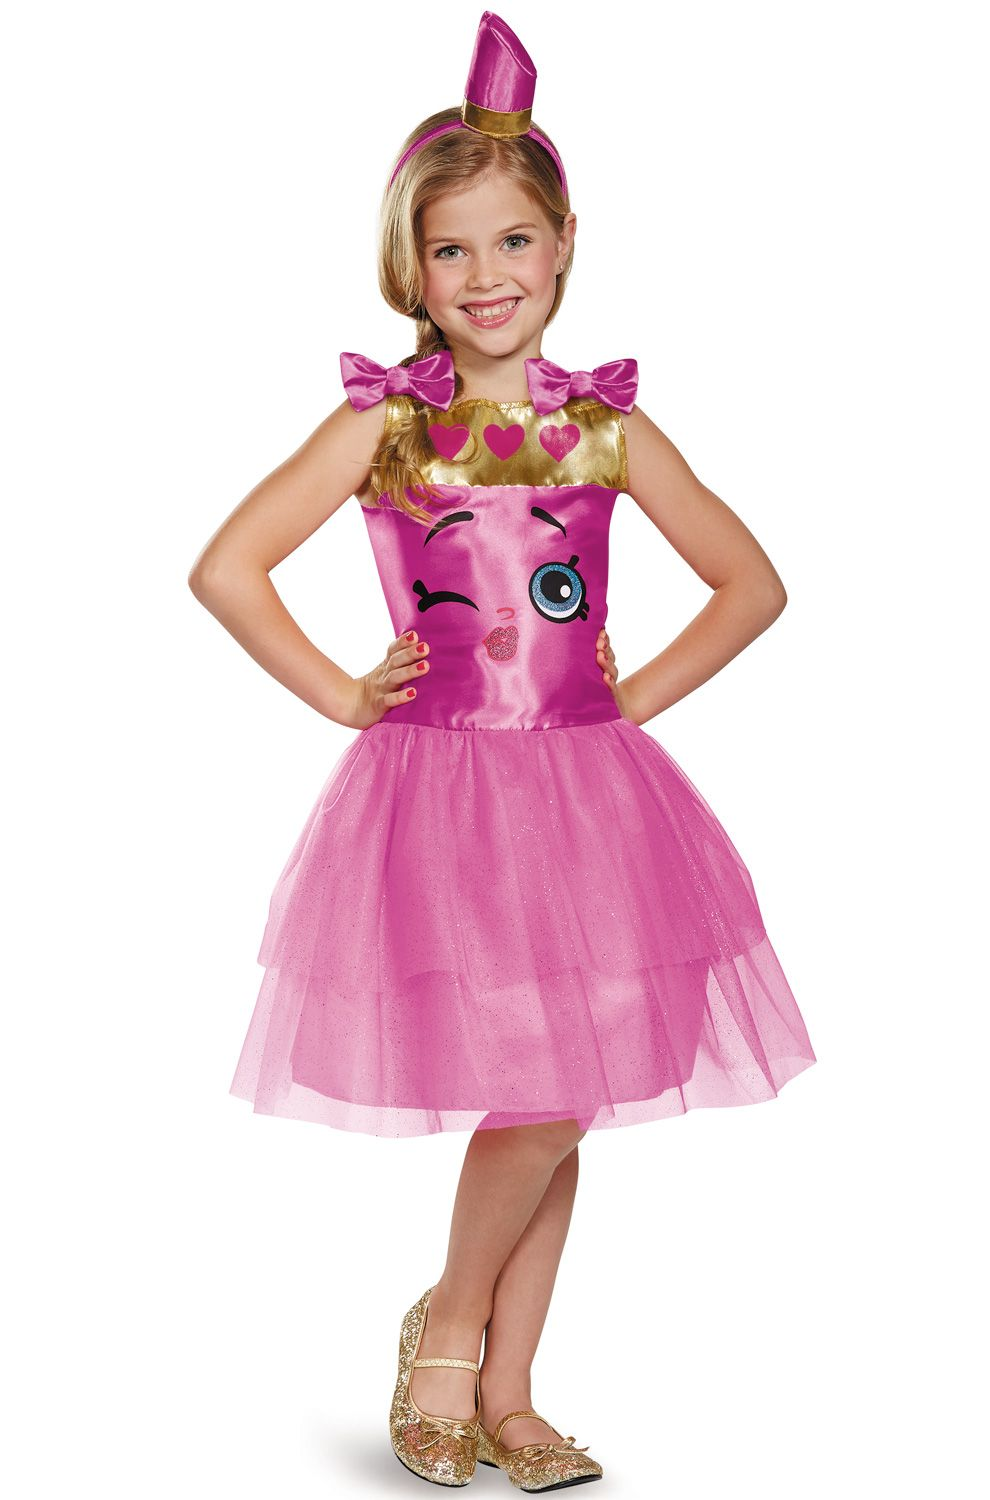 Lippy Lips Classic Child Costume | Classic, Costumes and Fall in ...